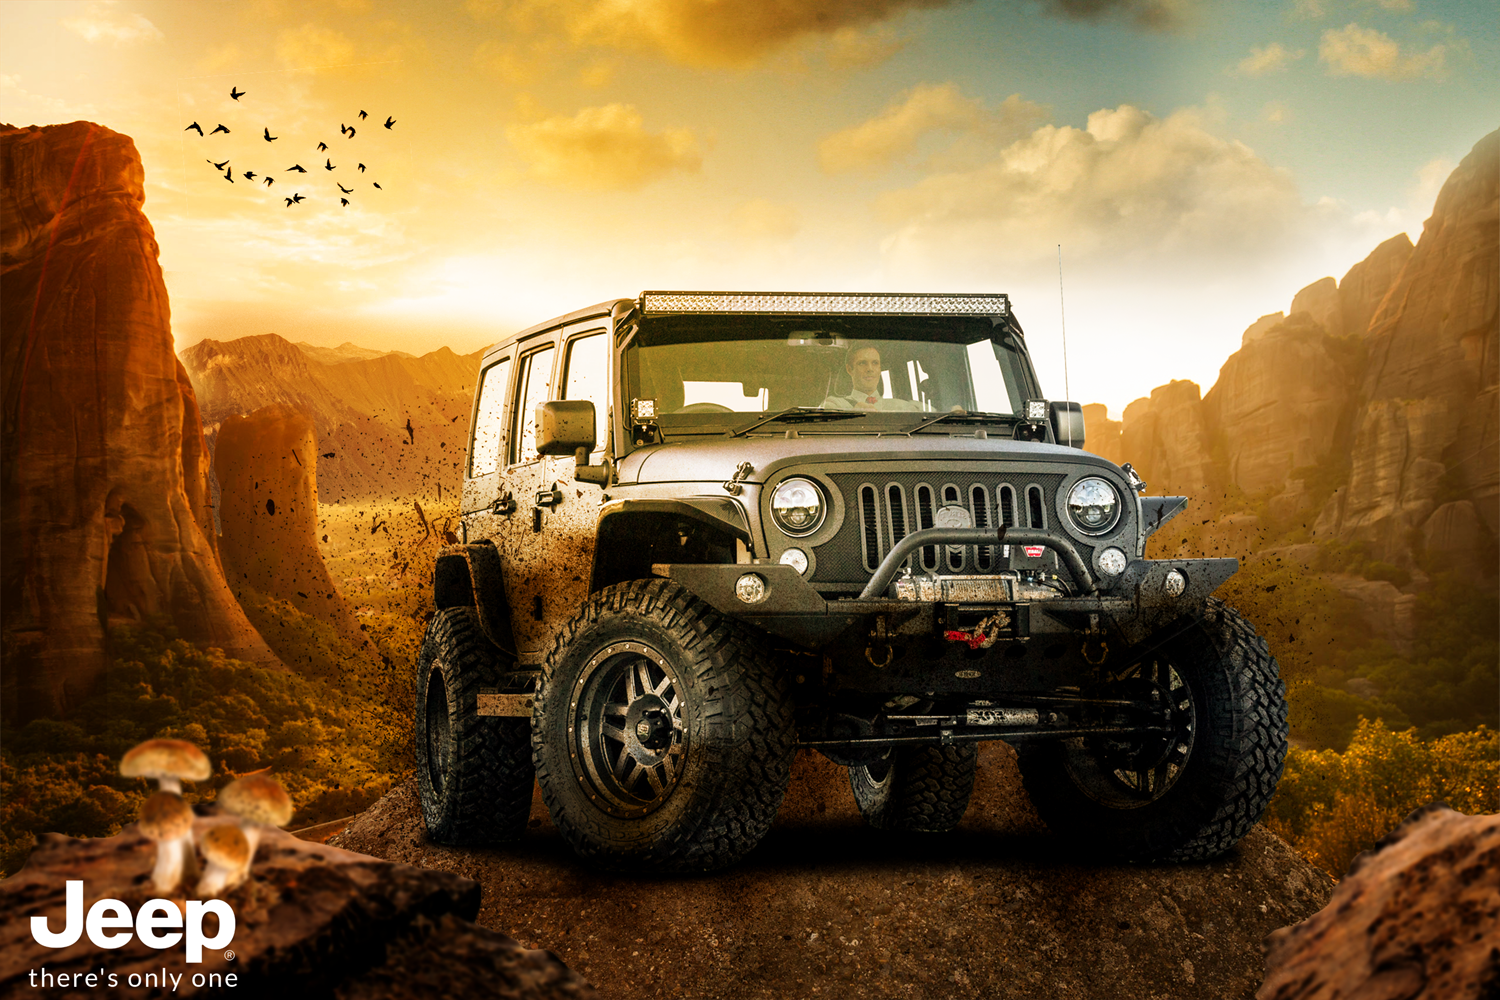 Jeep Outdoor Ad There 039 S Only One Jeep Social Media Design Monster Trucks